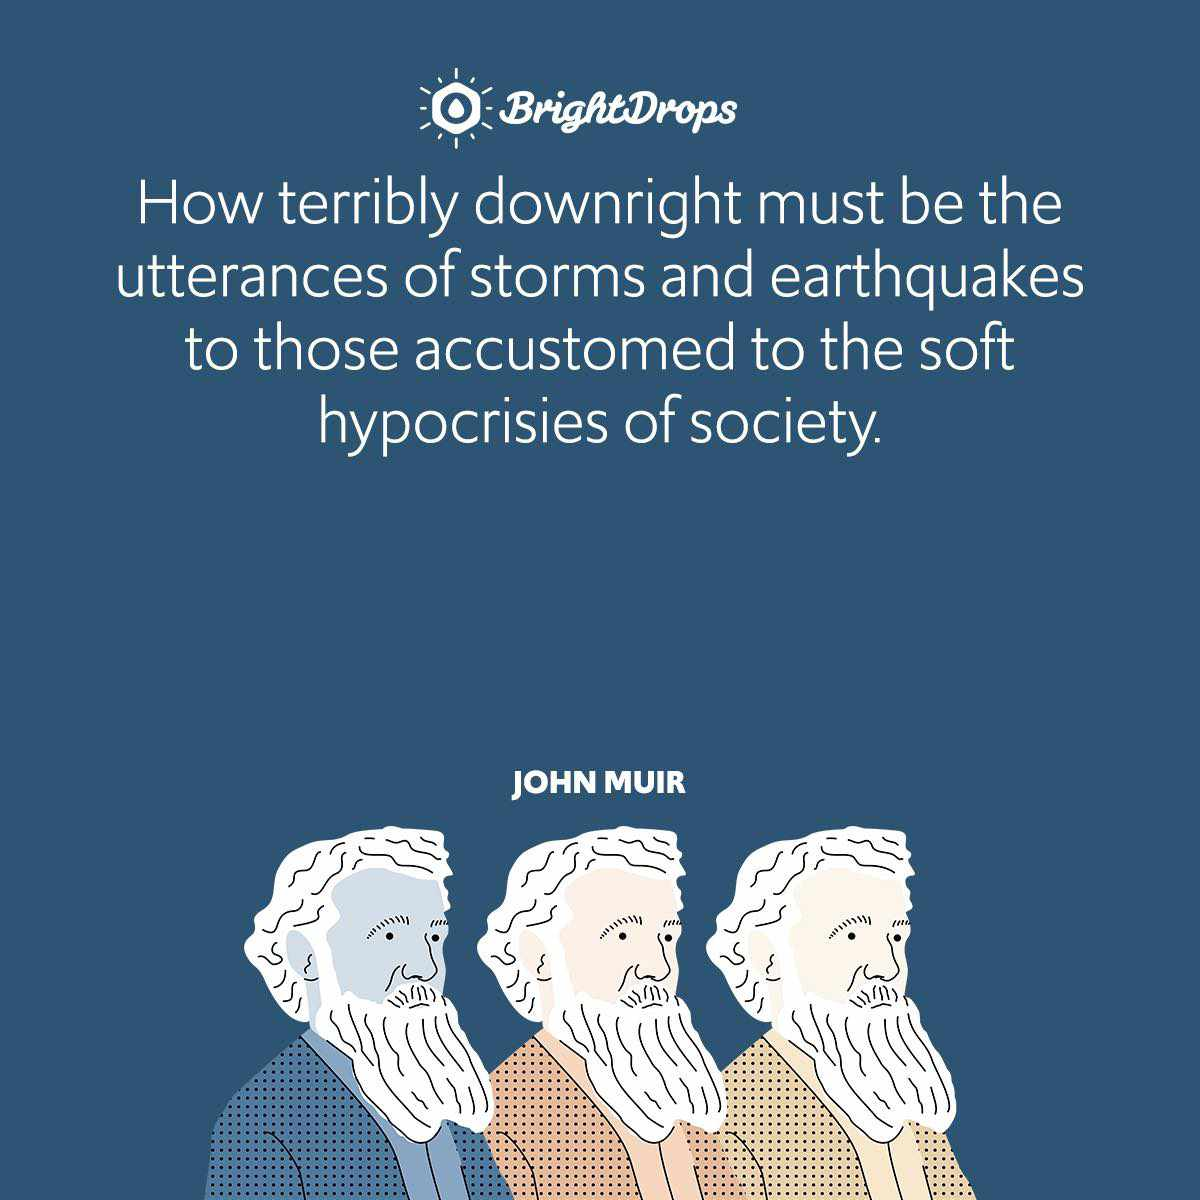 How terribly downright must be the utterances of storms and earthquakes to those accustomed to the soft hypocrisies of society.